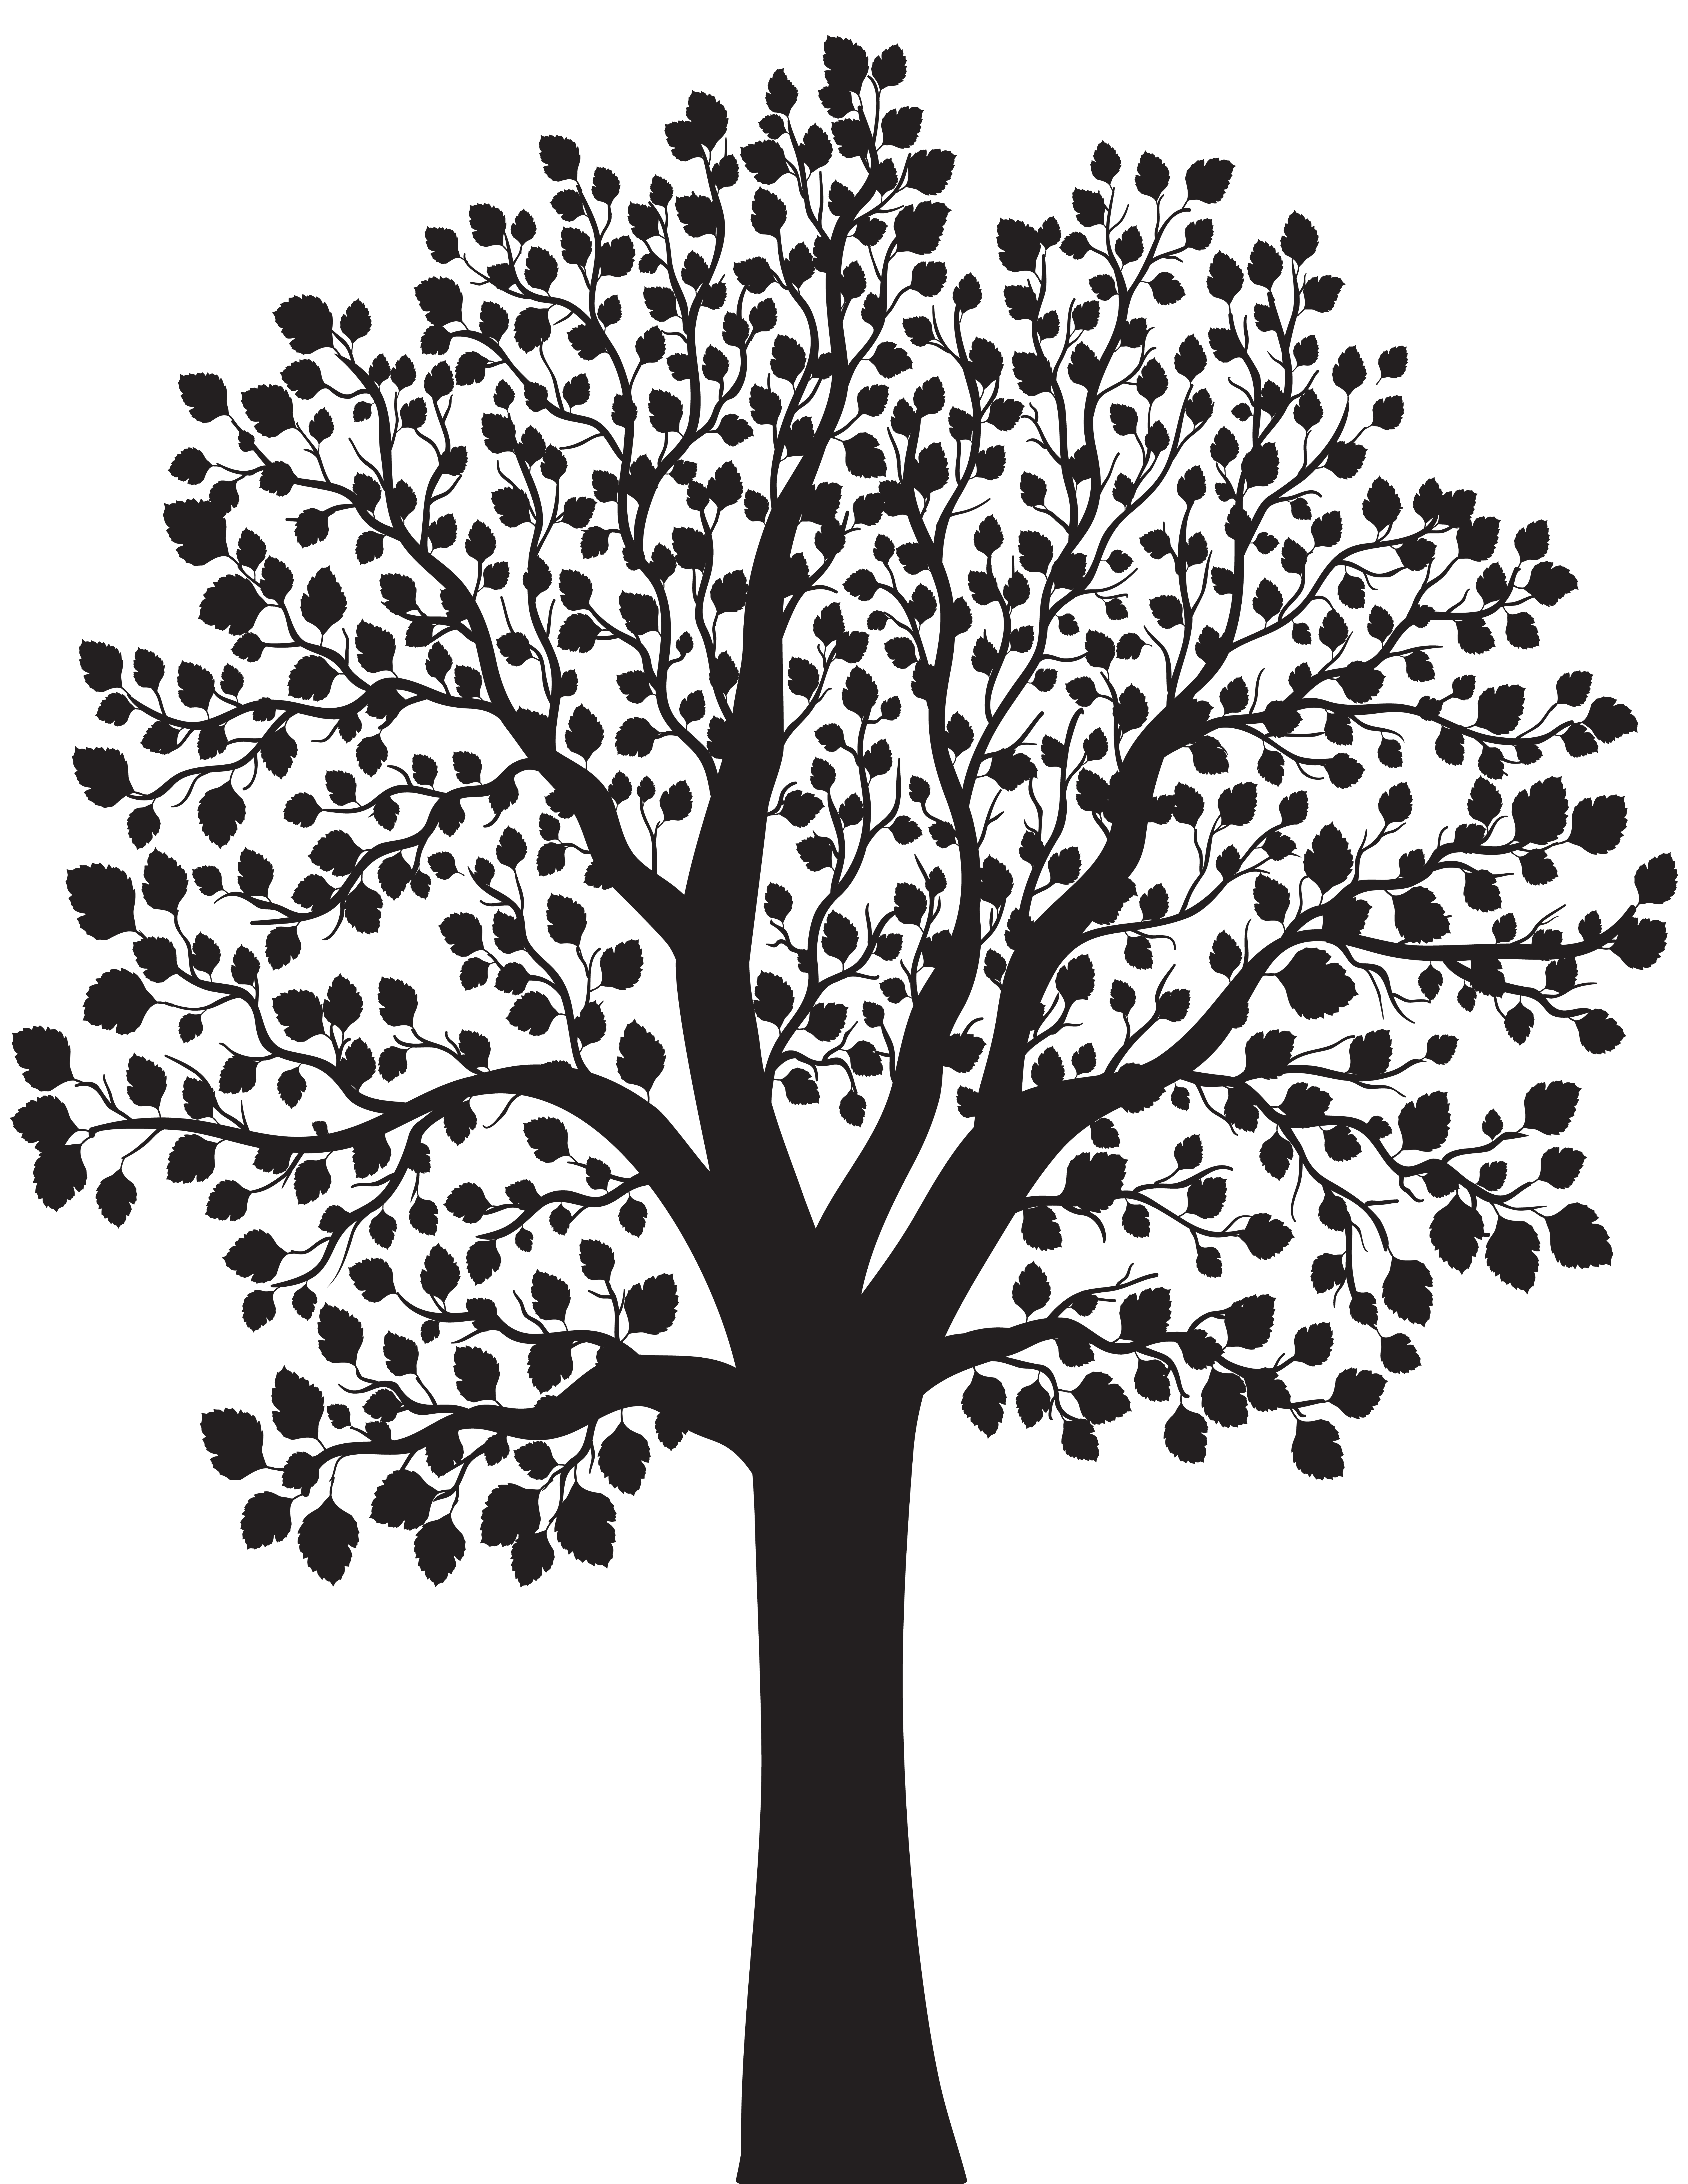 Tree Silhouette PNG Clip Art Image.